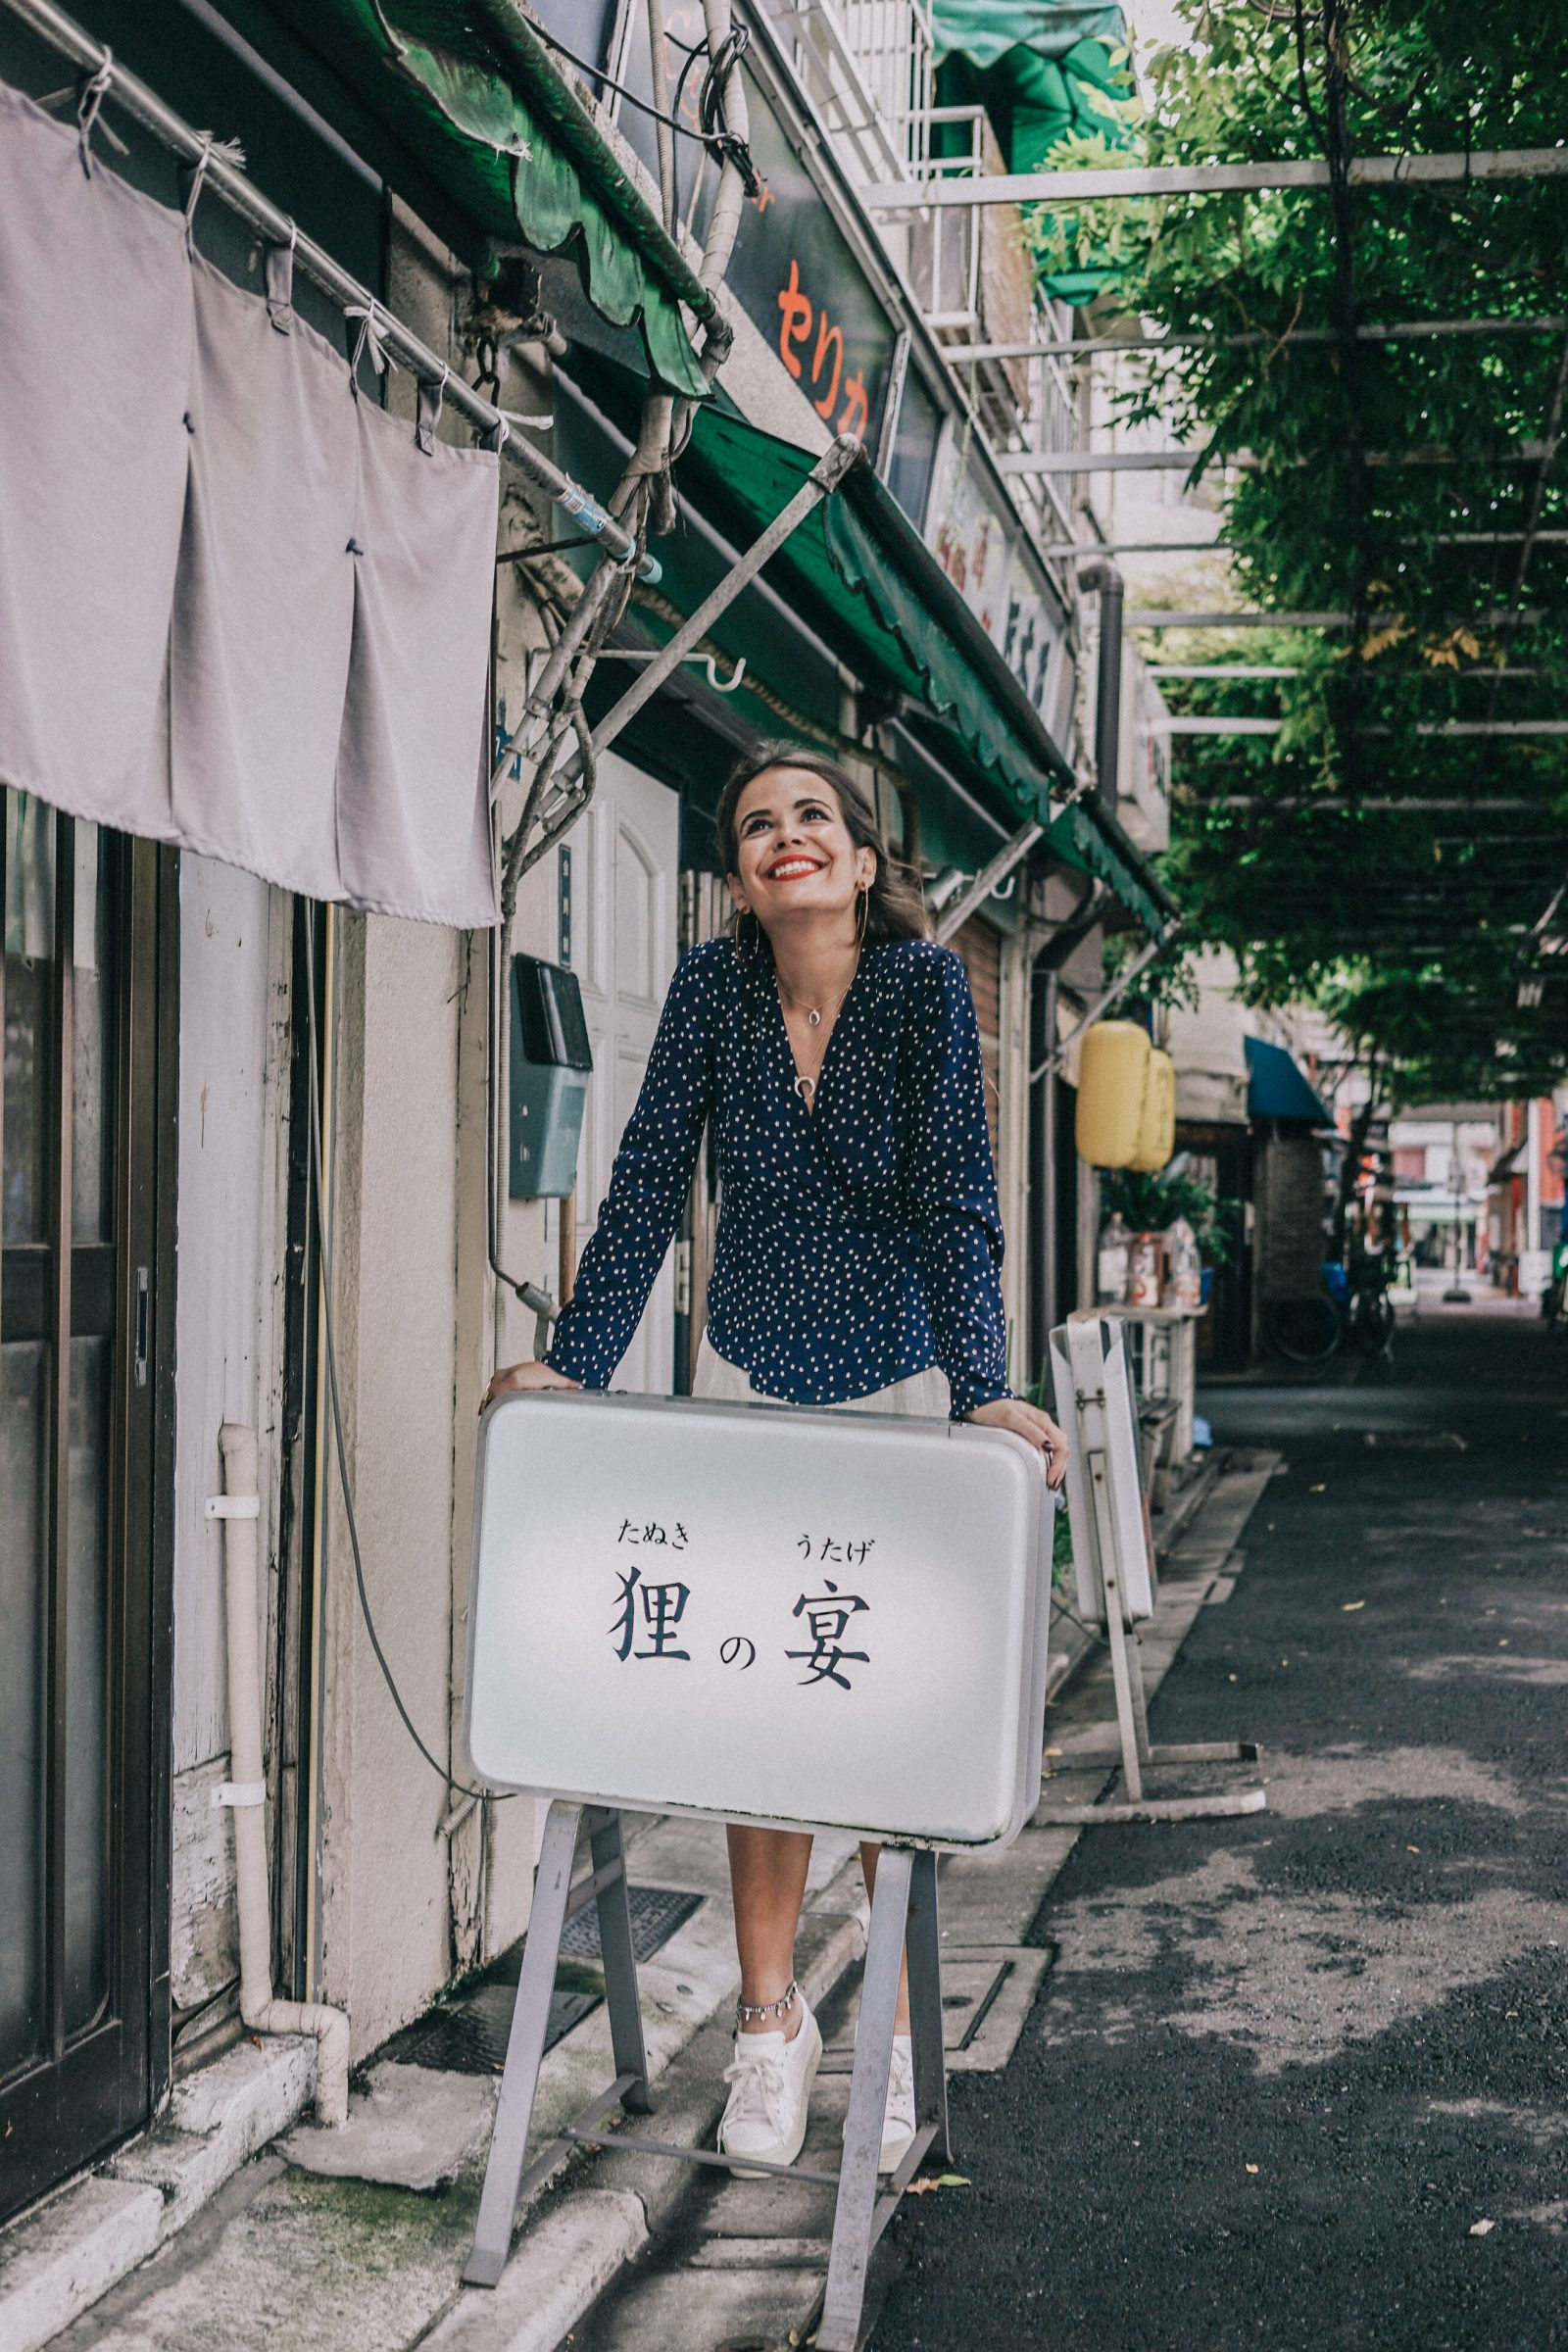 Tokyo_Travel_Guide-Outfit-Collage_Vintage-Street_Style-Reformation_Shorts-Realisation_Par_Stars_Blouse-Sneakers-Flea_Market_Backpack-86